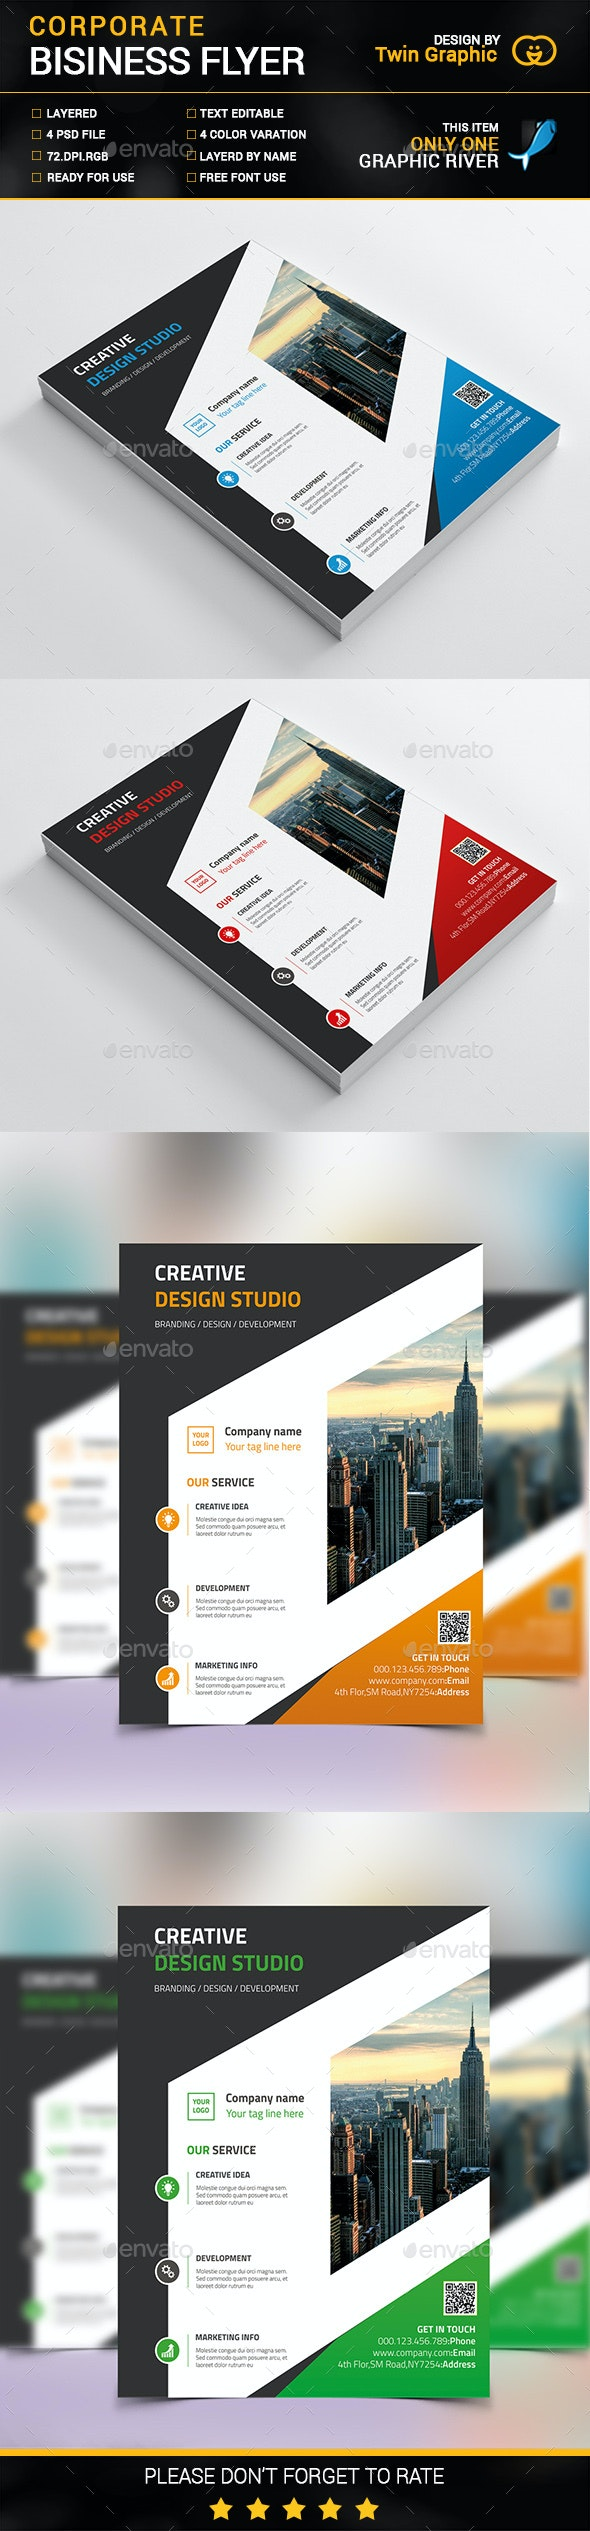 Corporate Business Flyer Design - Corporate Flyers